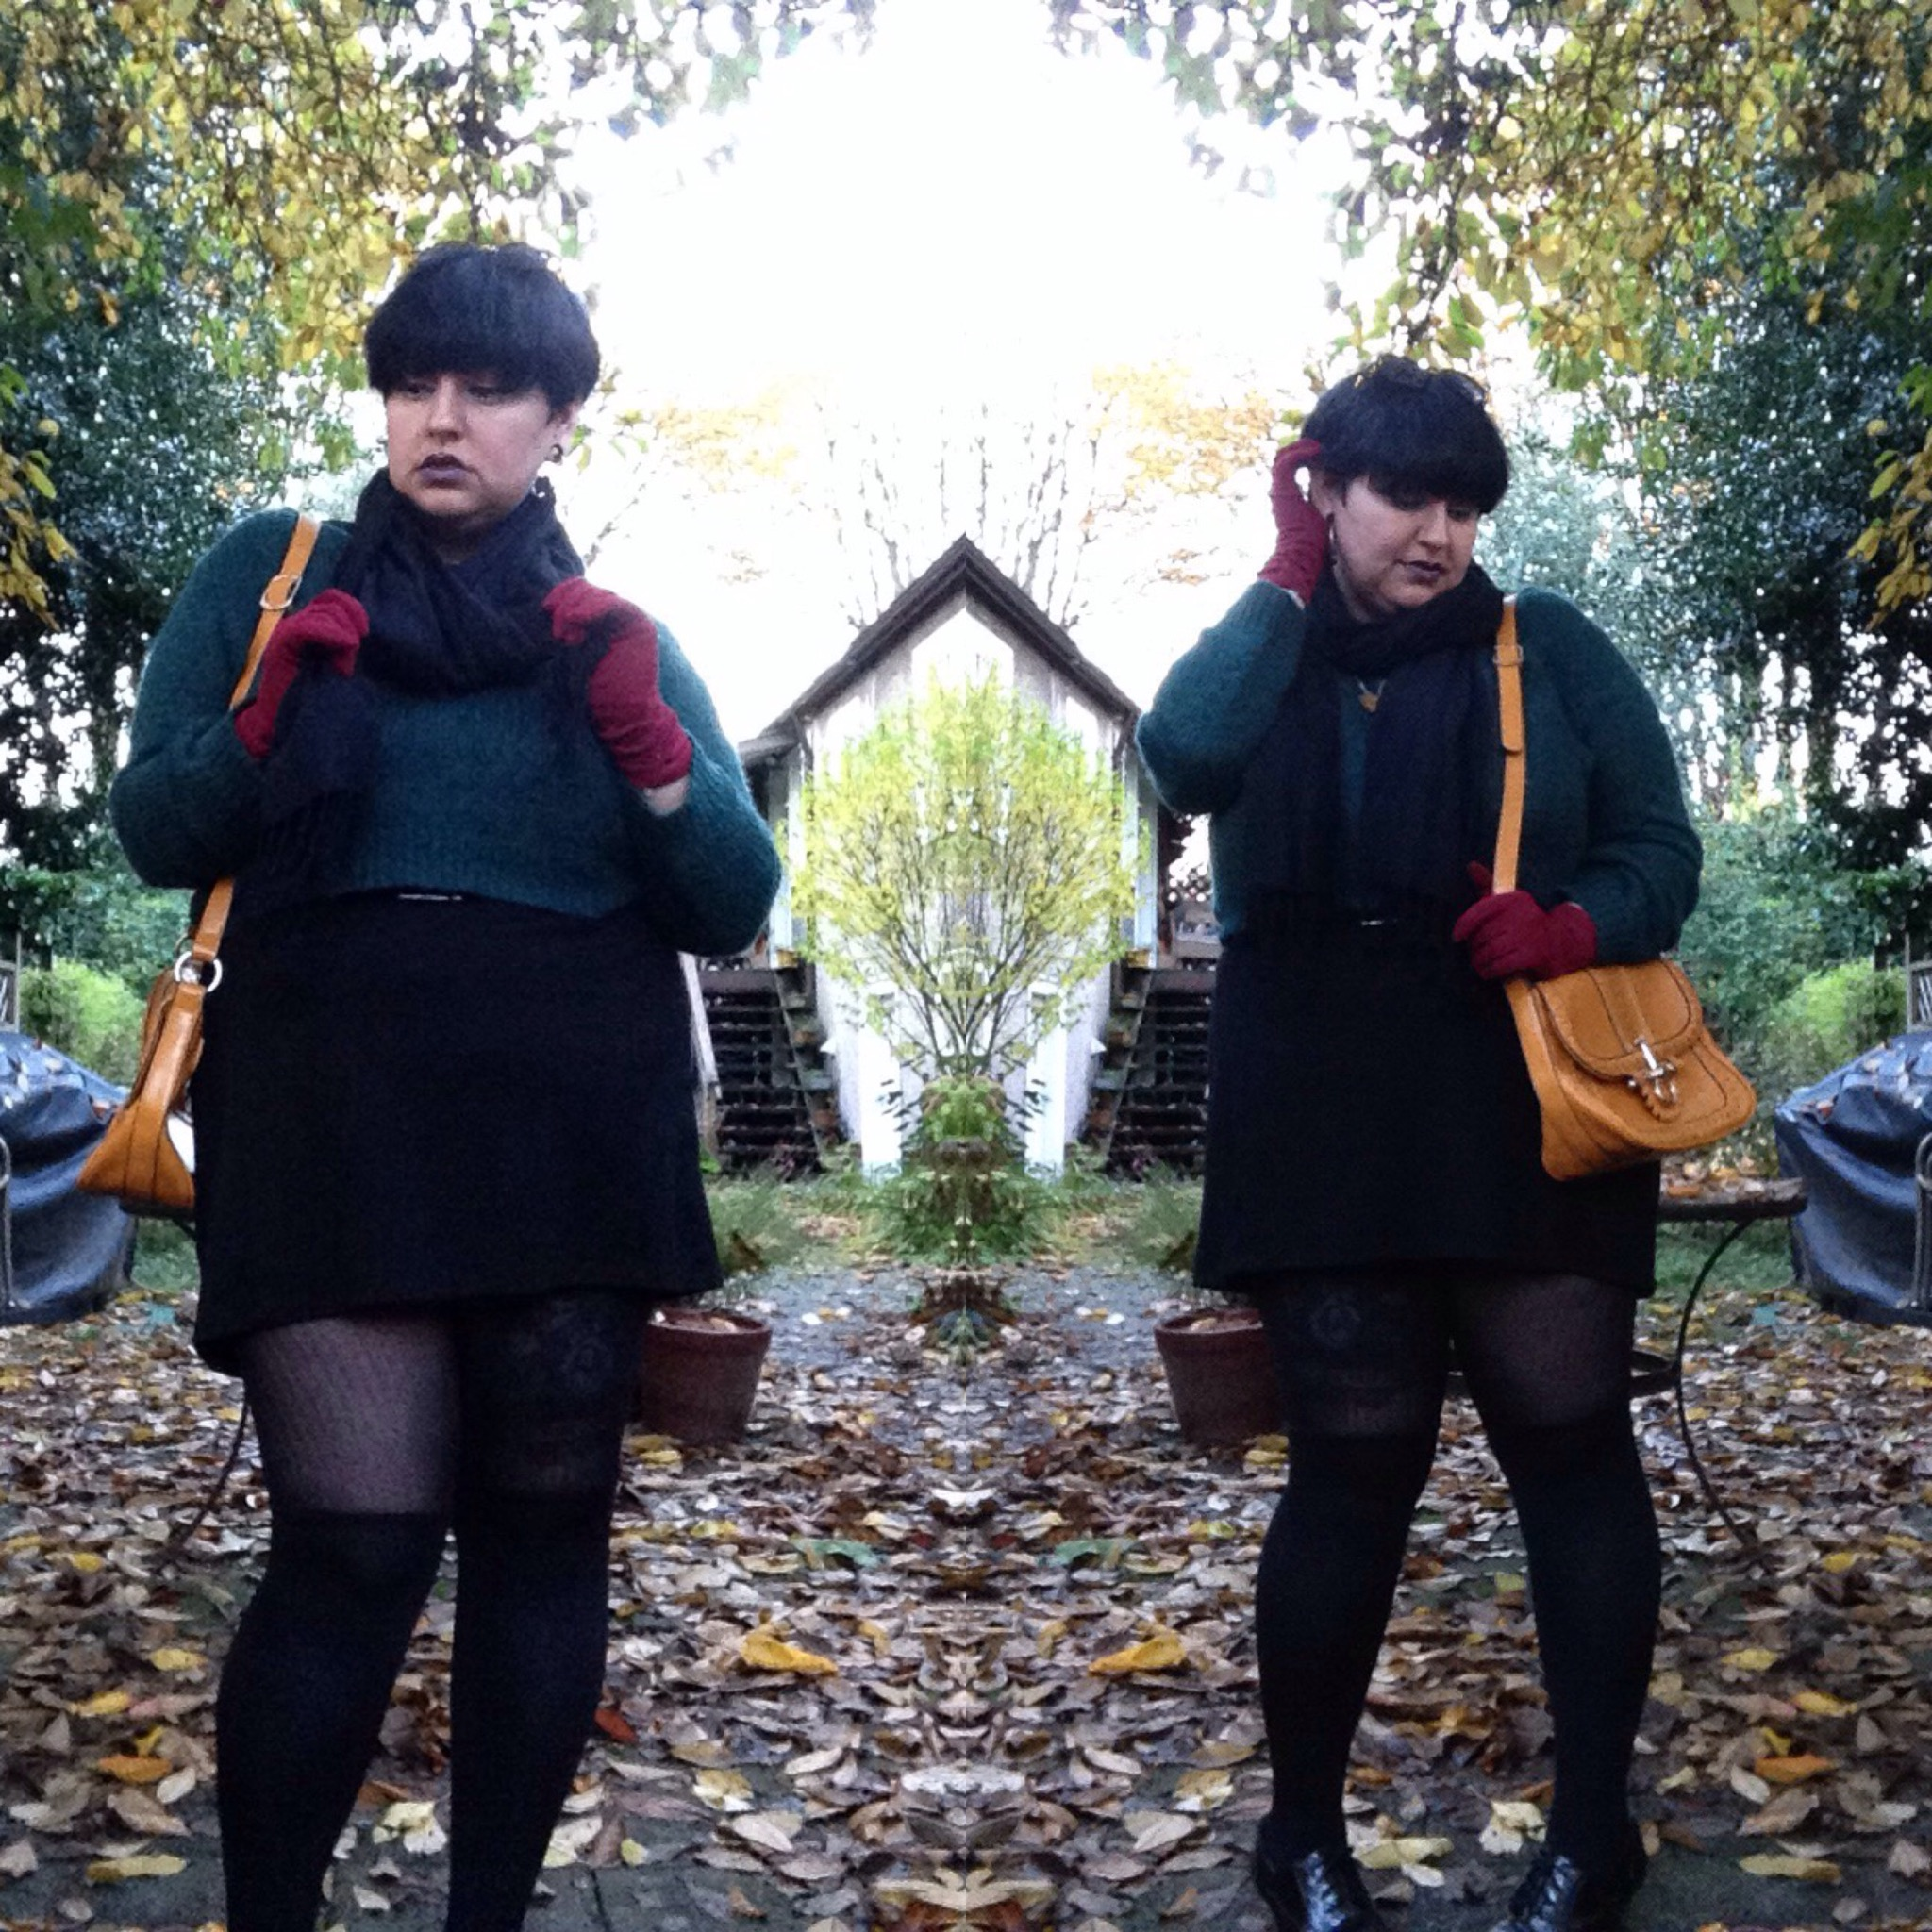 sweater weather // alternative plus size fashion // margot meanie